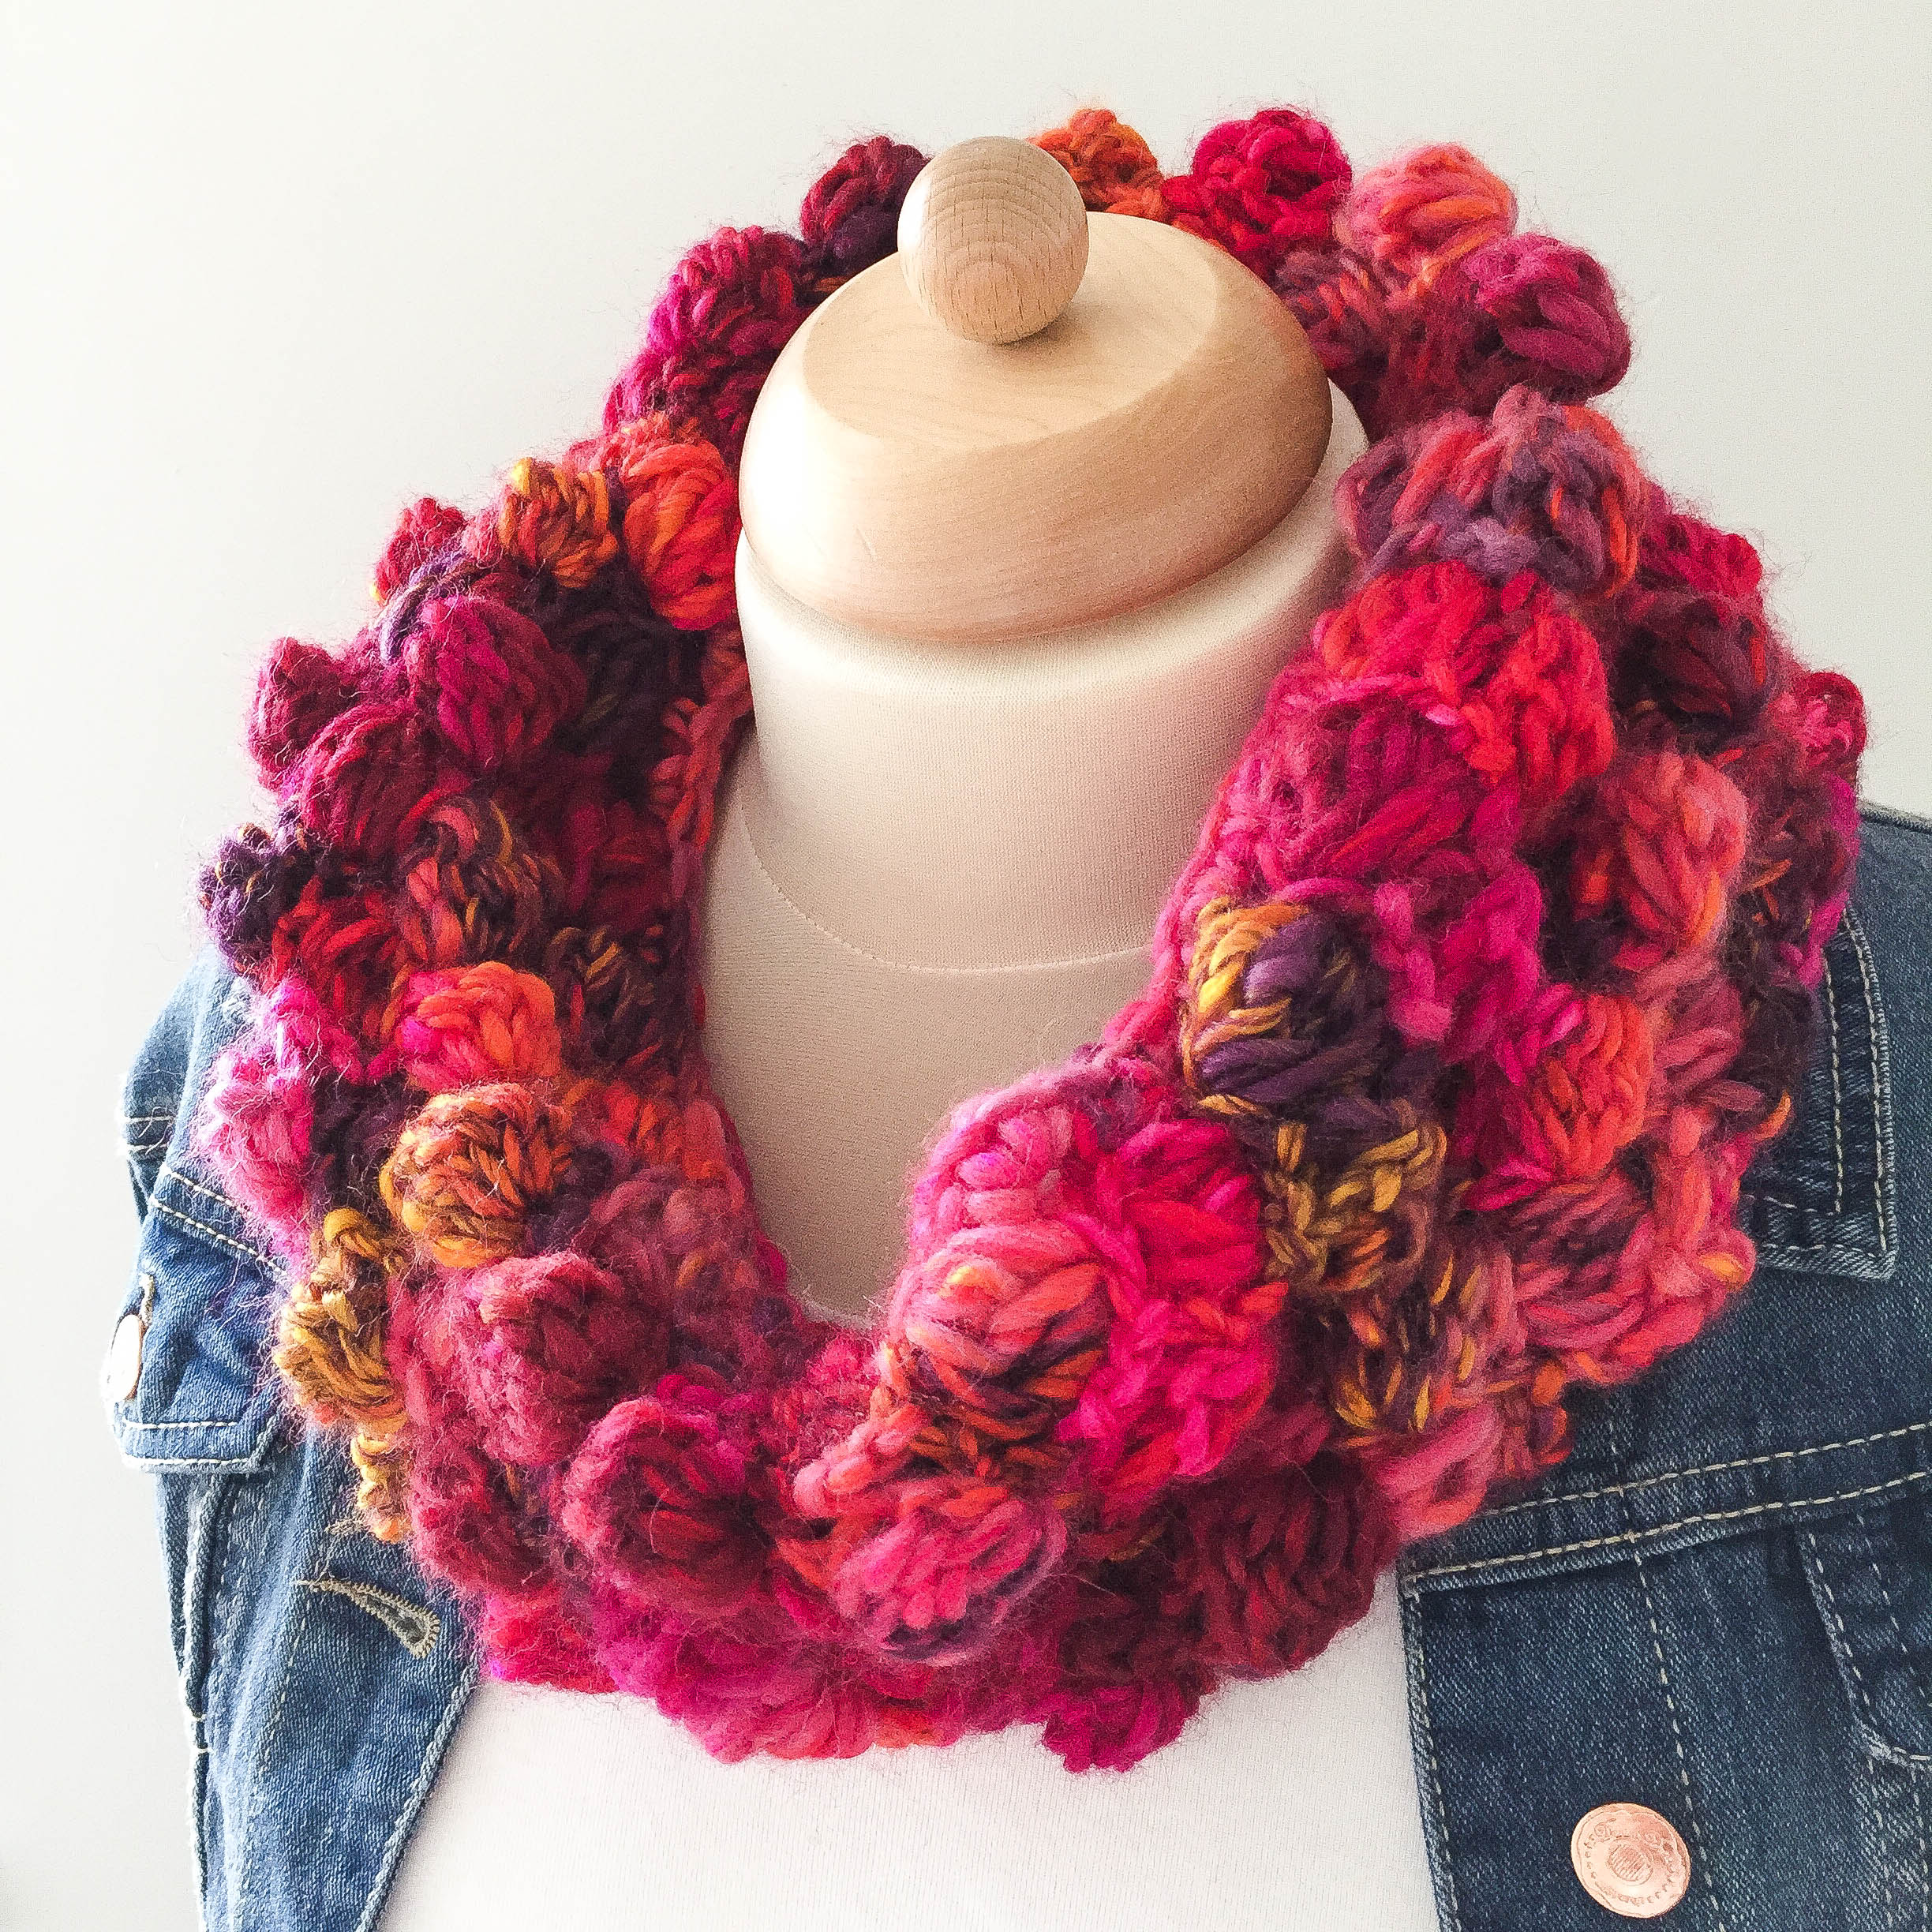 """Big Bobble Cowl"" by Jacqueline"